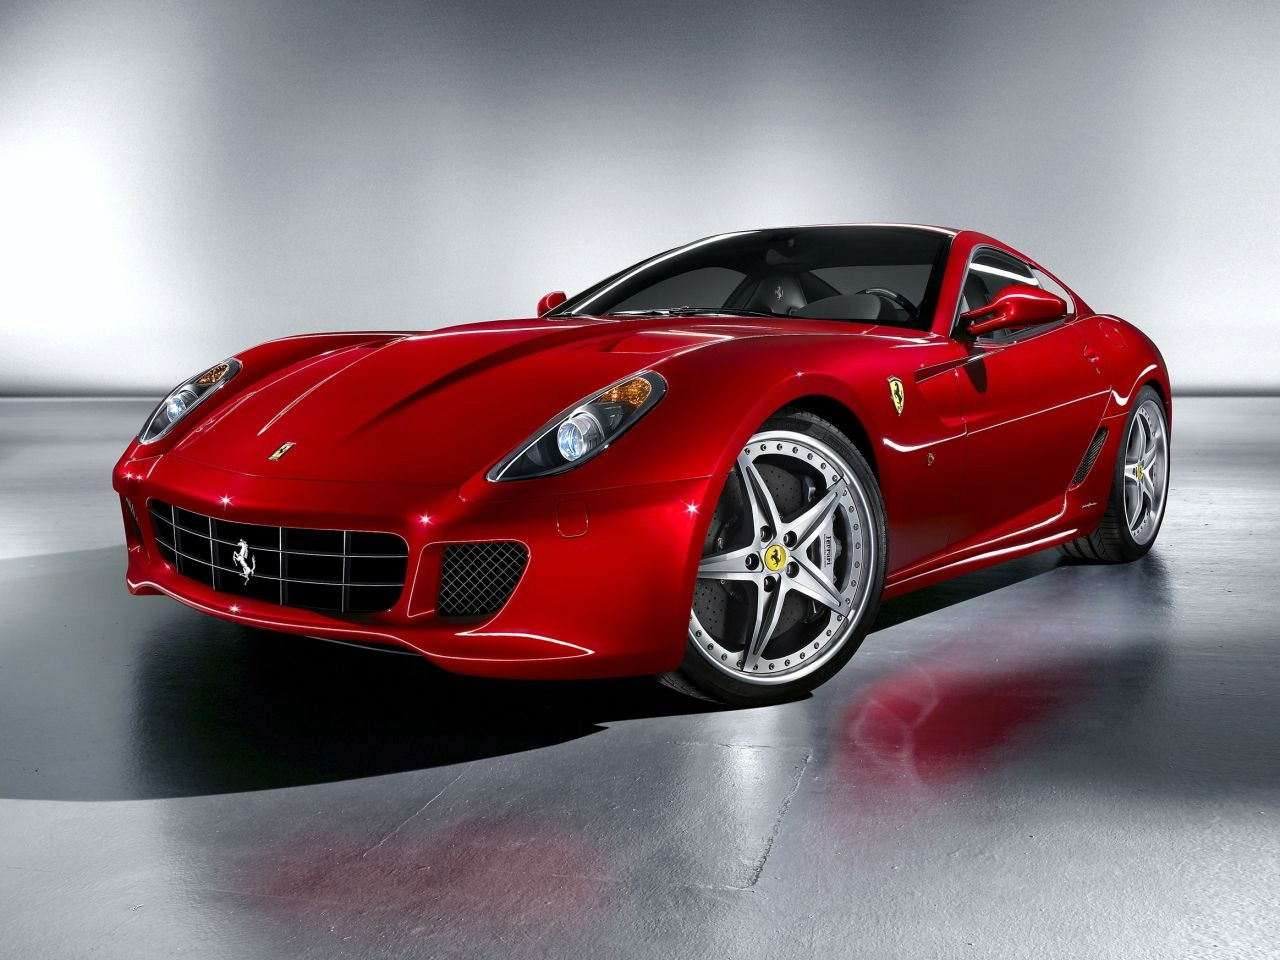 Ferrari 599 Hgte Package And 599xx Break Cover At Geneva Auto Show Tomorrow